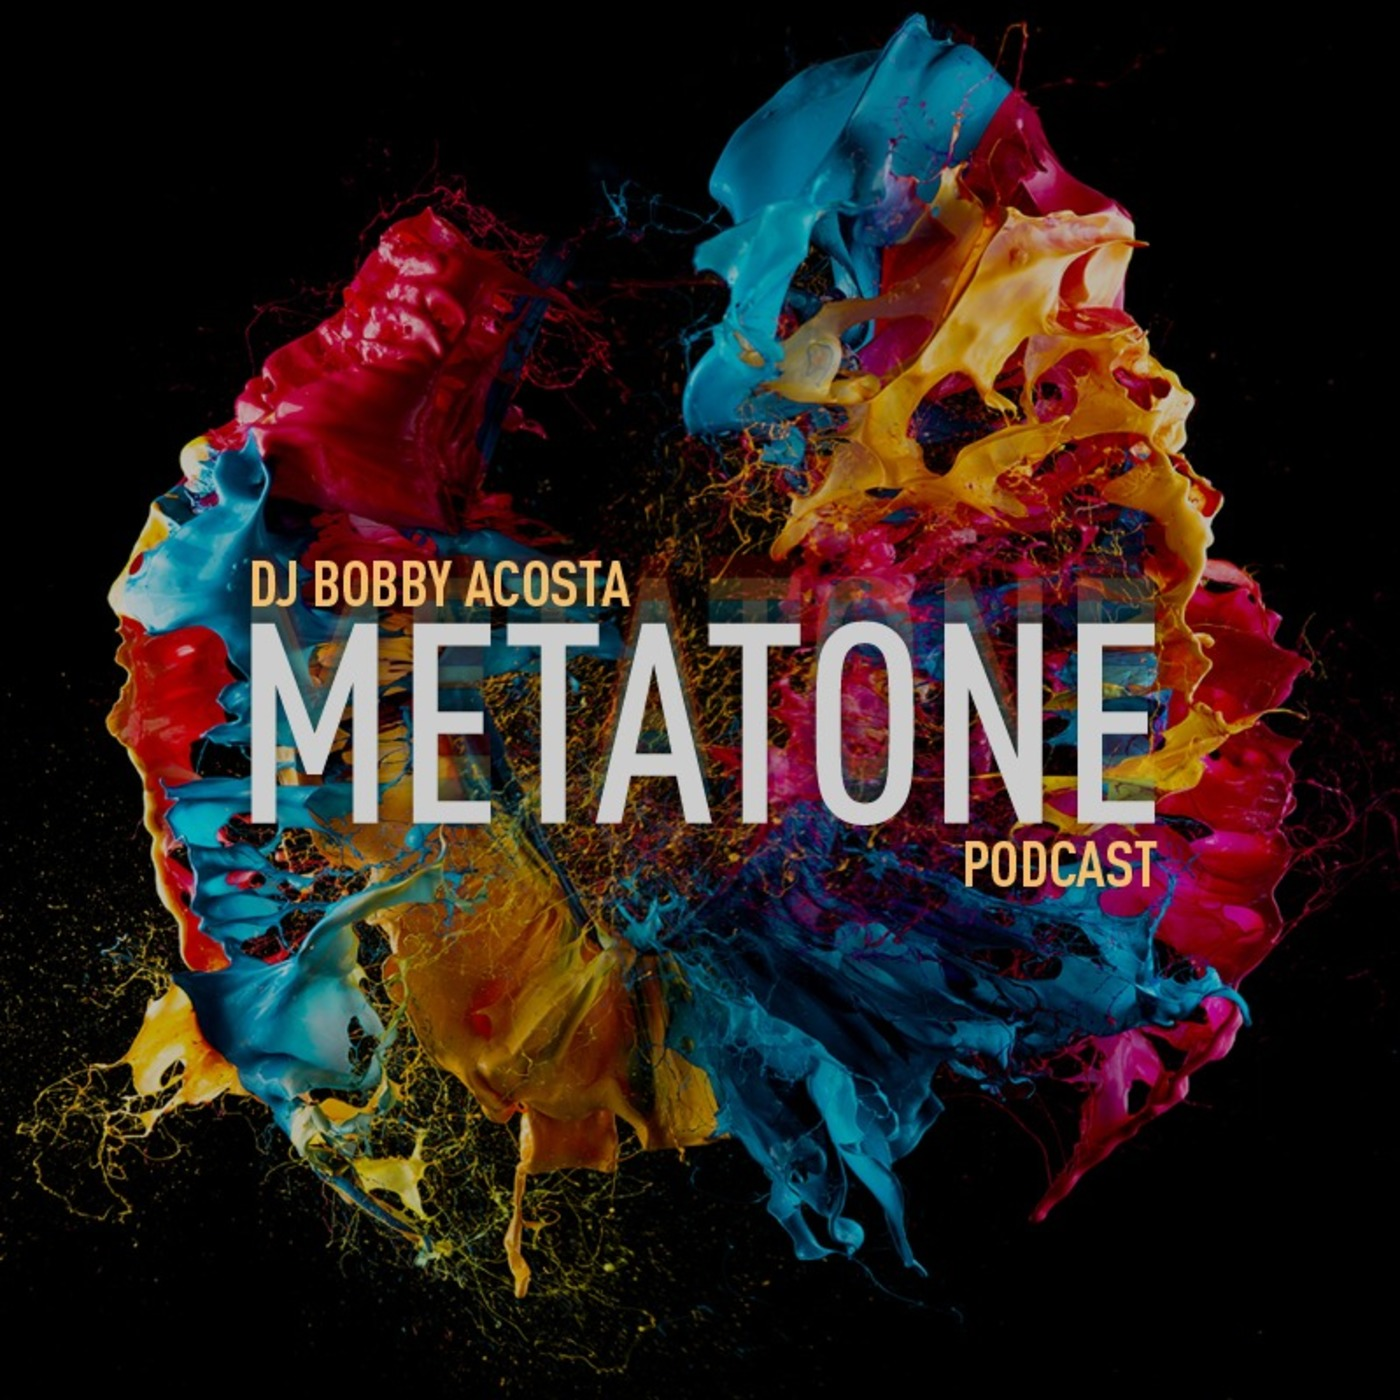 Metatone: #53 EDM Throwback Mix 2010-2014 Metatone Podcast